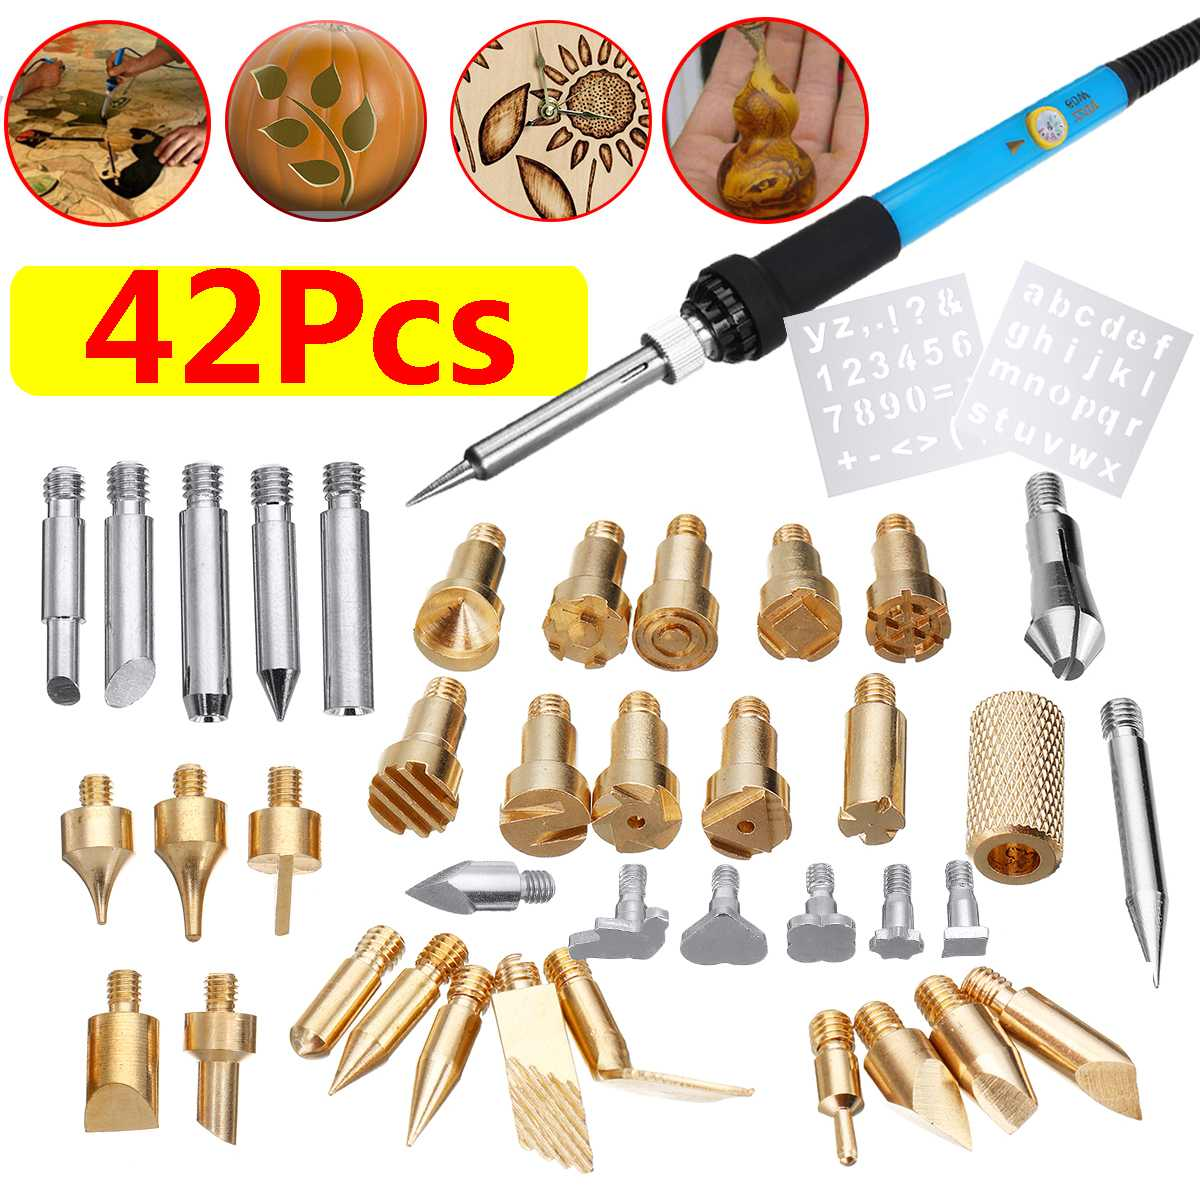 42Pcs Electric Soldering Iron Kit Wood Burning Pen Tip Pyrography Craft Tool  Repair For Woodworking 60W 110V/220V US/EU Plug